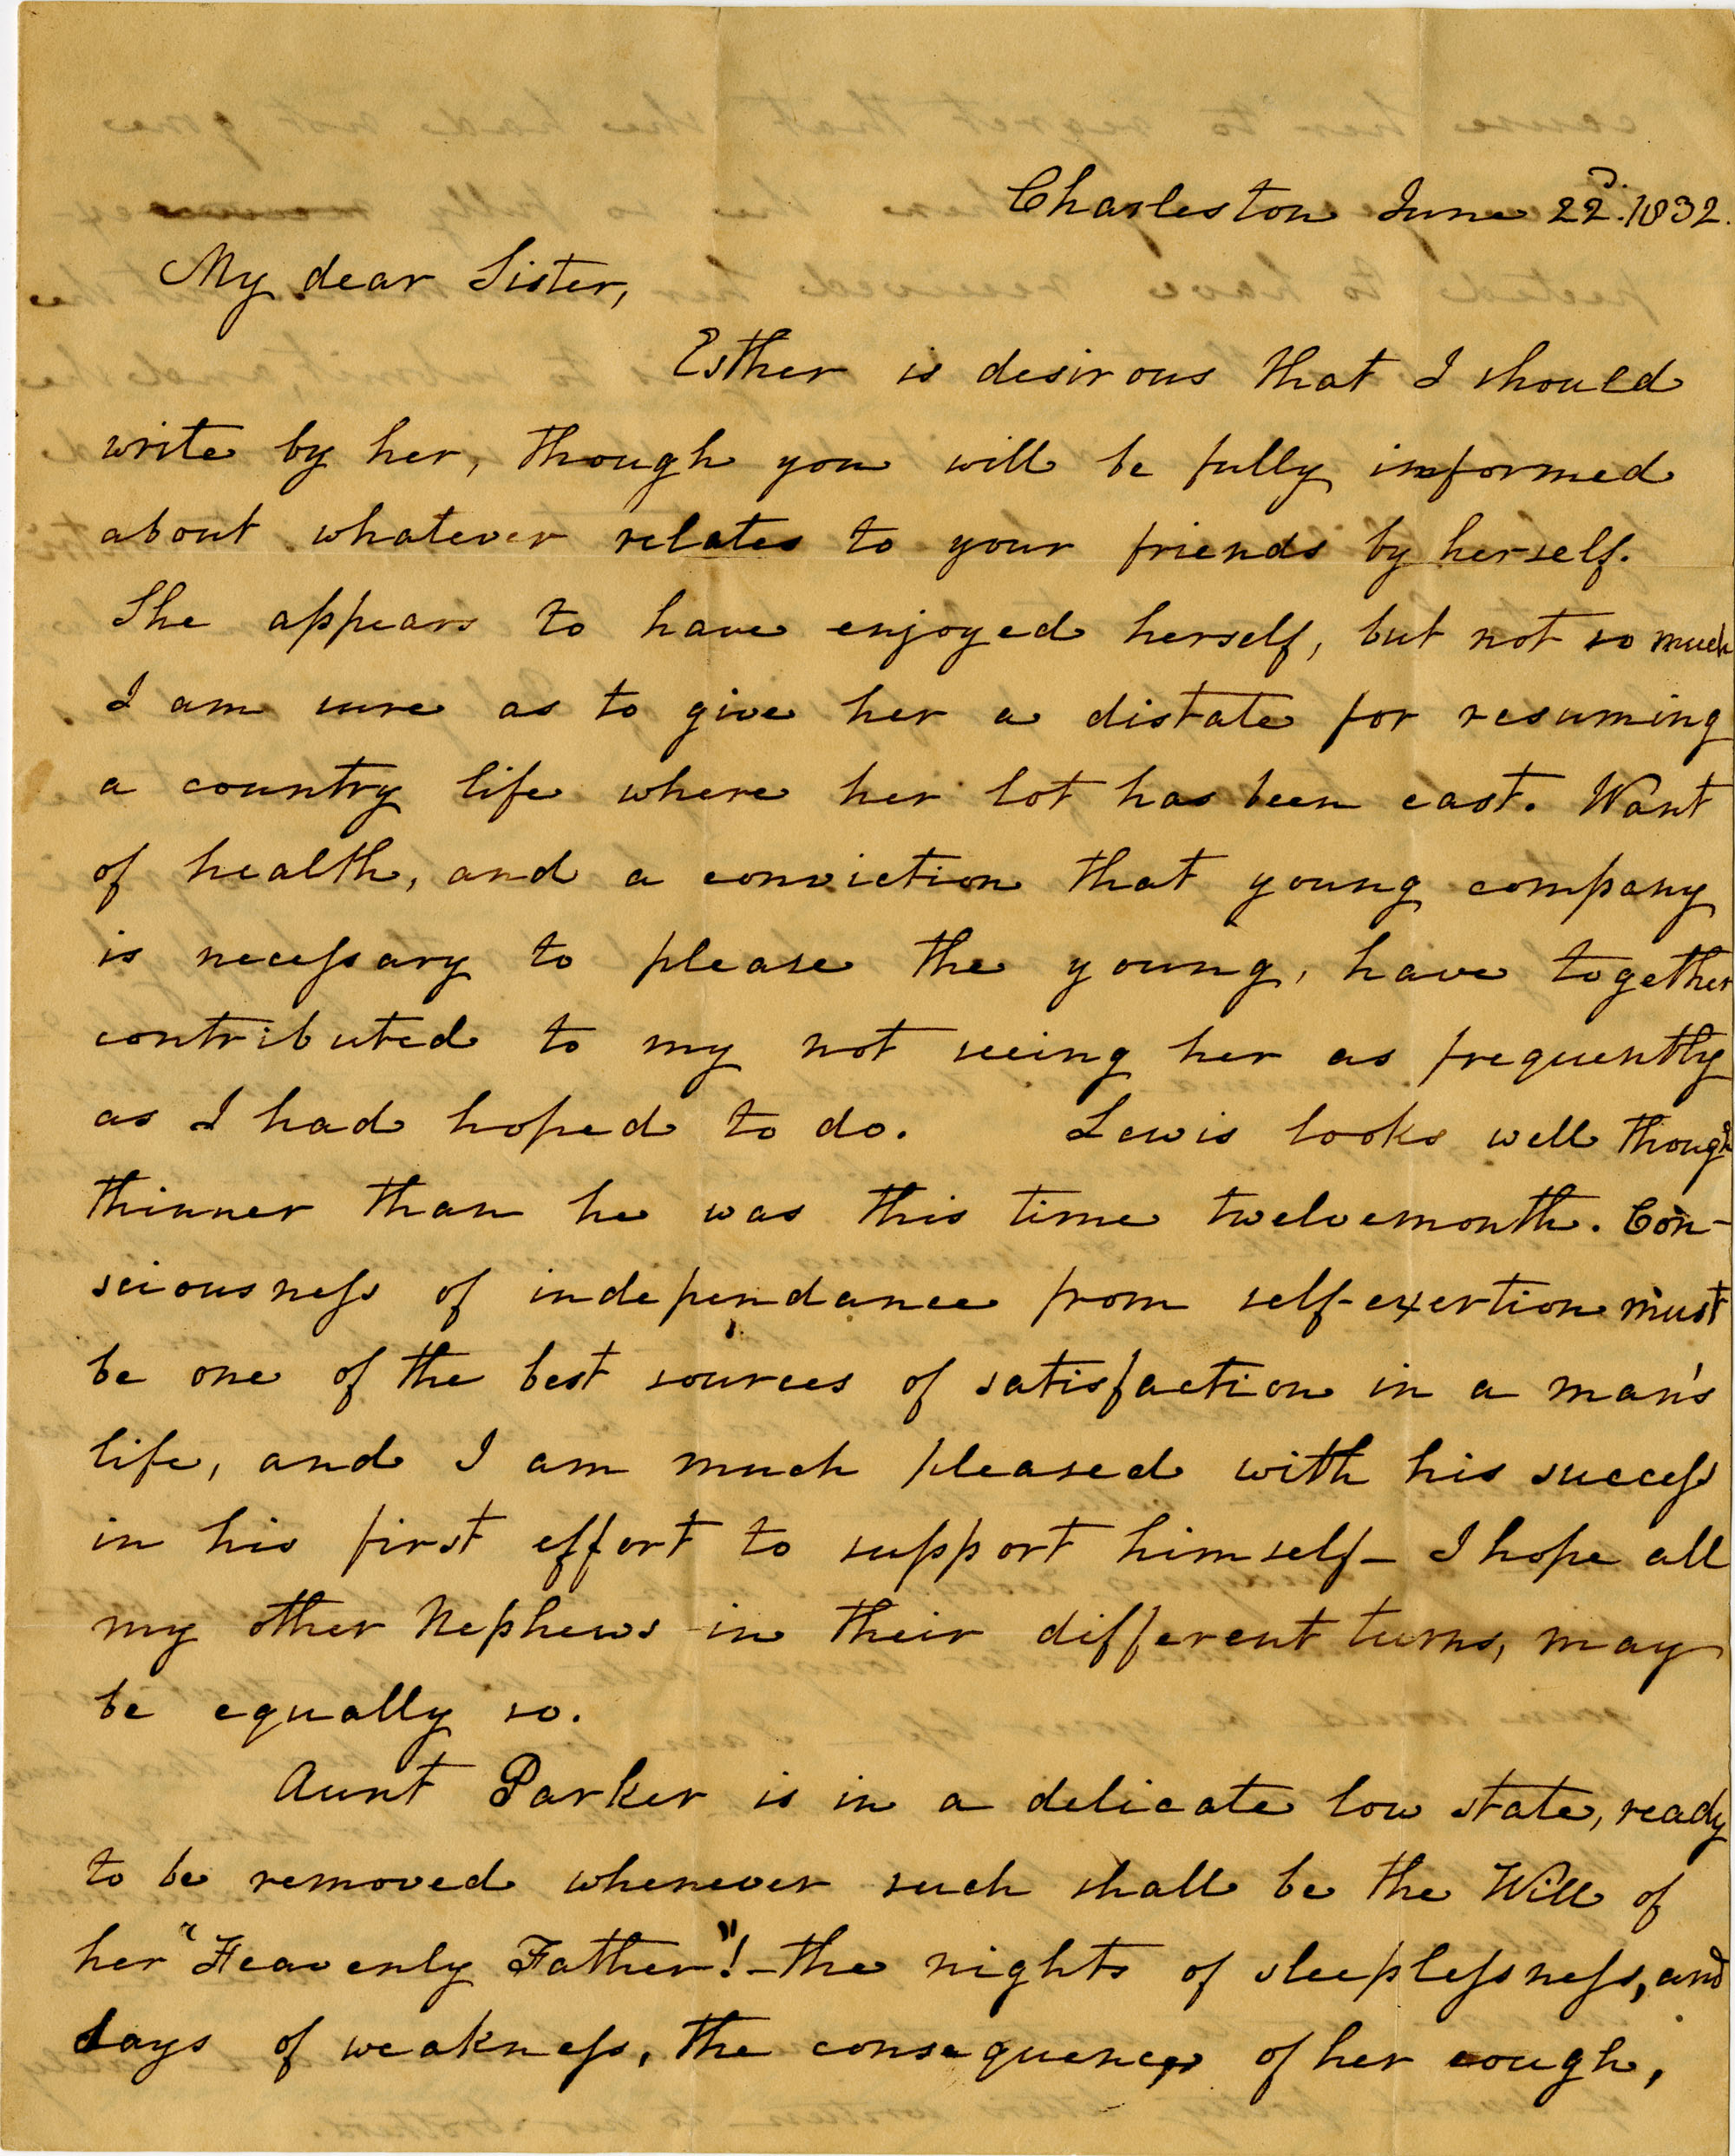 Letter from Charlotte Manigault and Ann  M. Taylor to Henrietta Drayton